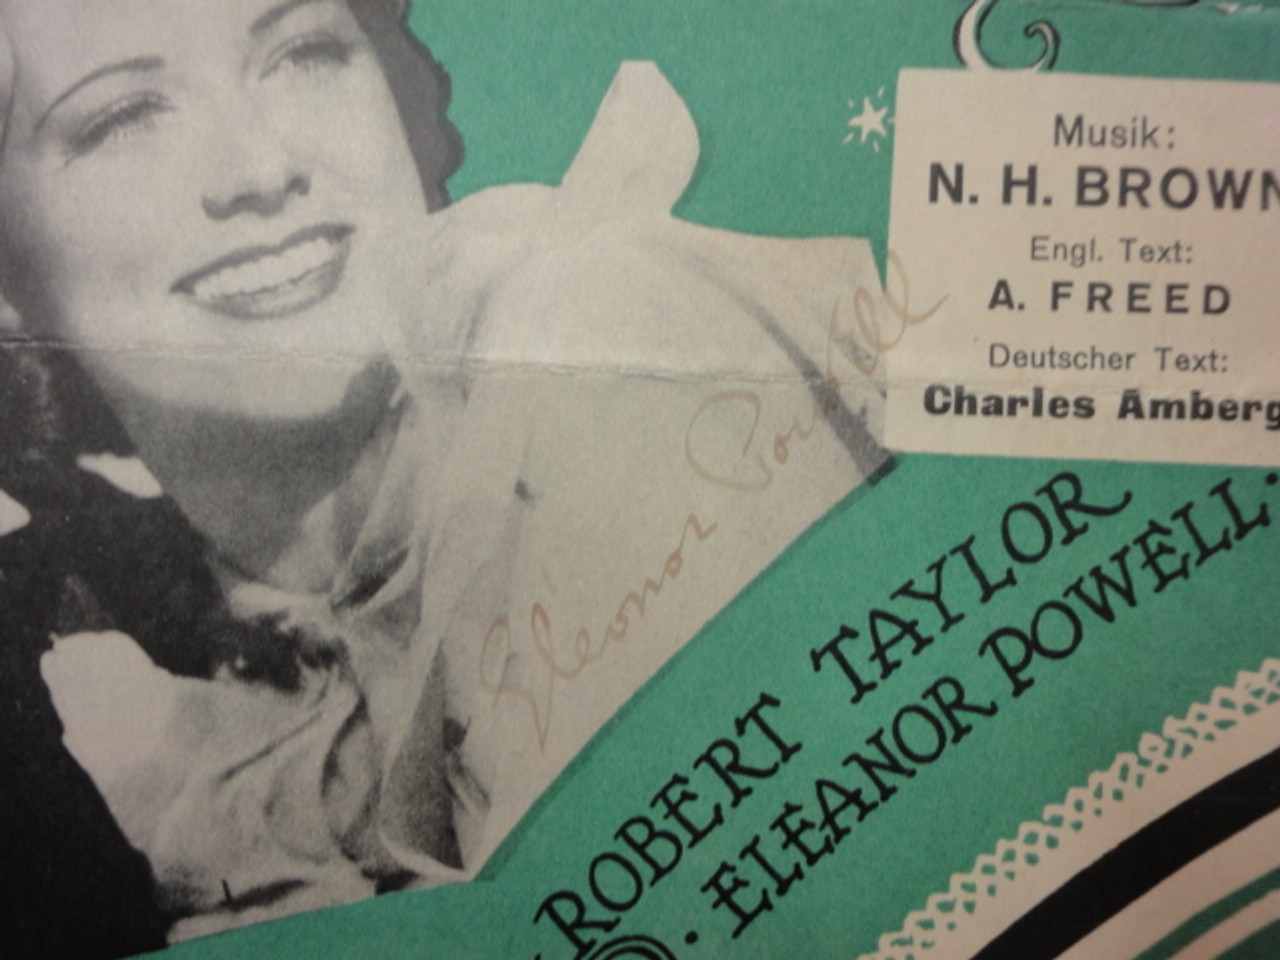 """Taylor, Robert and Eleanor Powell """"Broadway Melody of 1936"""" Sheet Music Signed Autograph 1935 Vintage Cover Photos """"You Are My Lucky Star"""""""